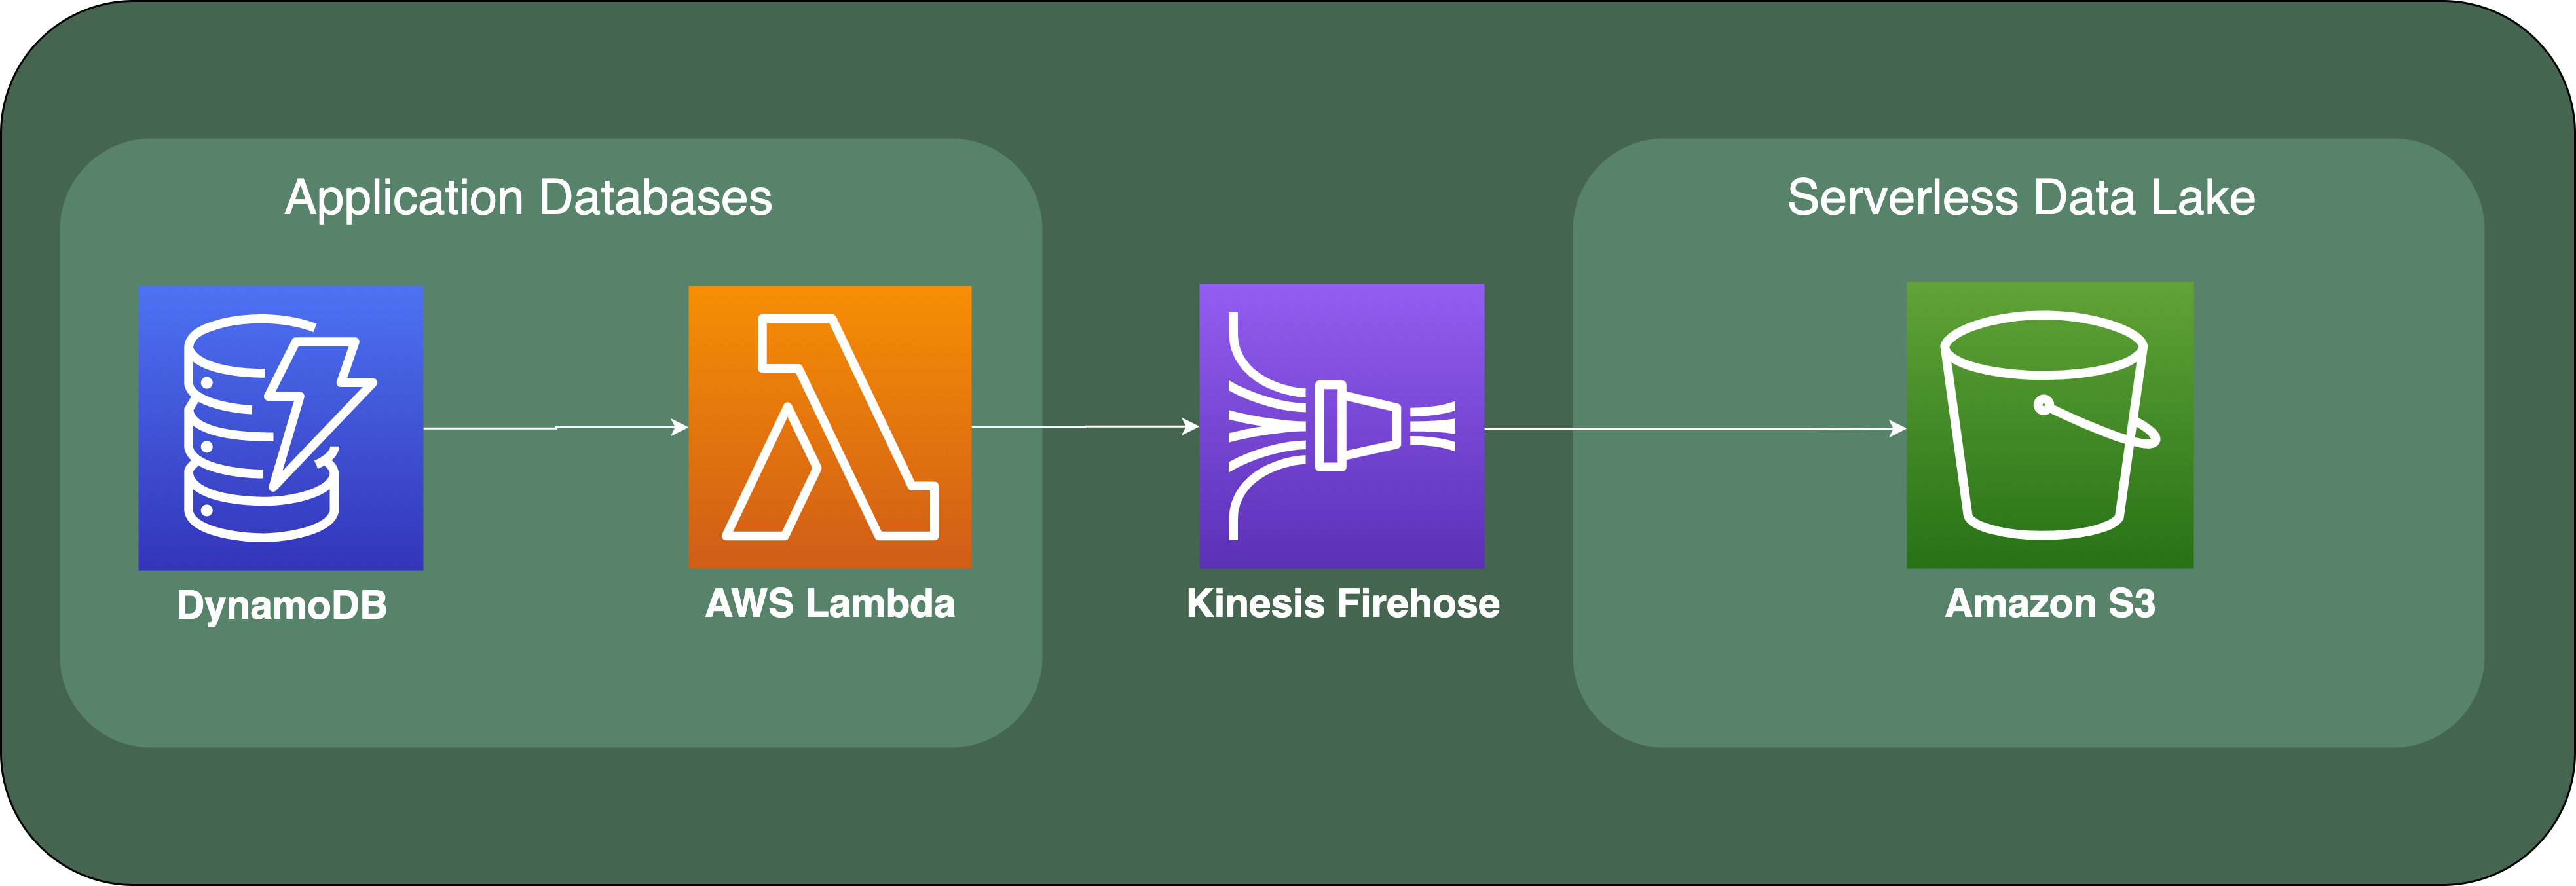 A serverless data pipeline showing data flow from DynamoDB through Lambda via Kinesis Firehose to the S3 bucket.